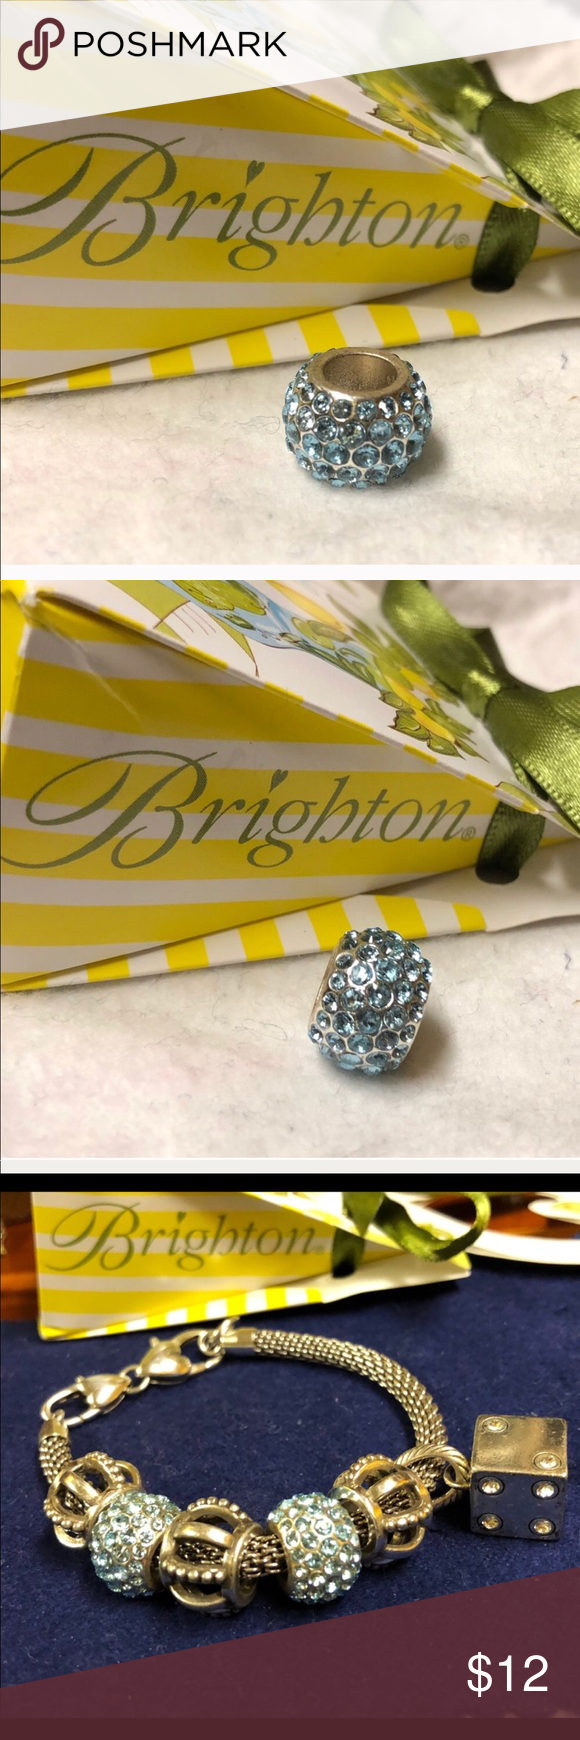 35+ What stores sell brighton jewelry info